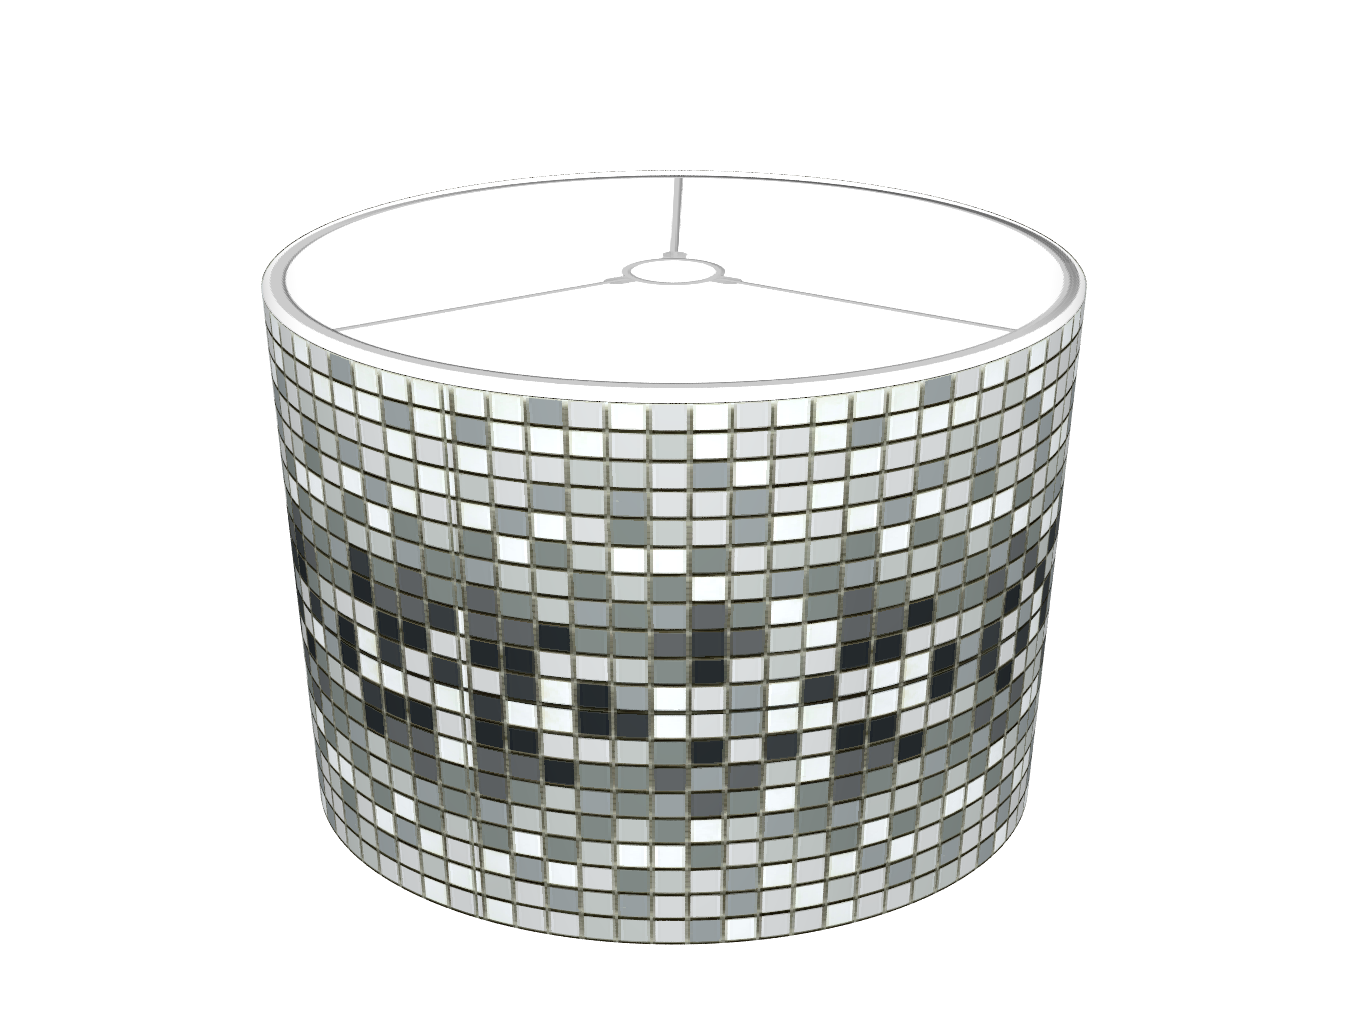 Mysoti thehouseofdisco the discoball lampshade lampshade the discoball lampshade aloadofball Images